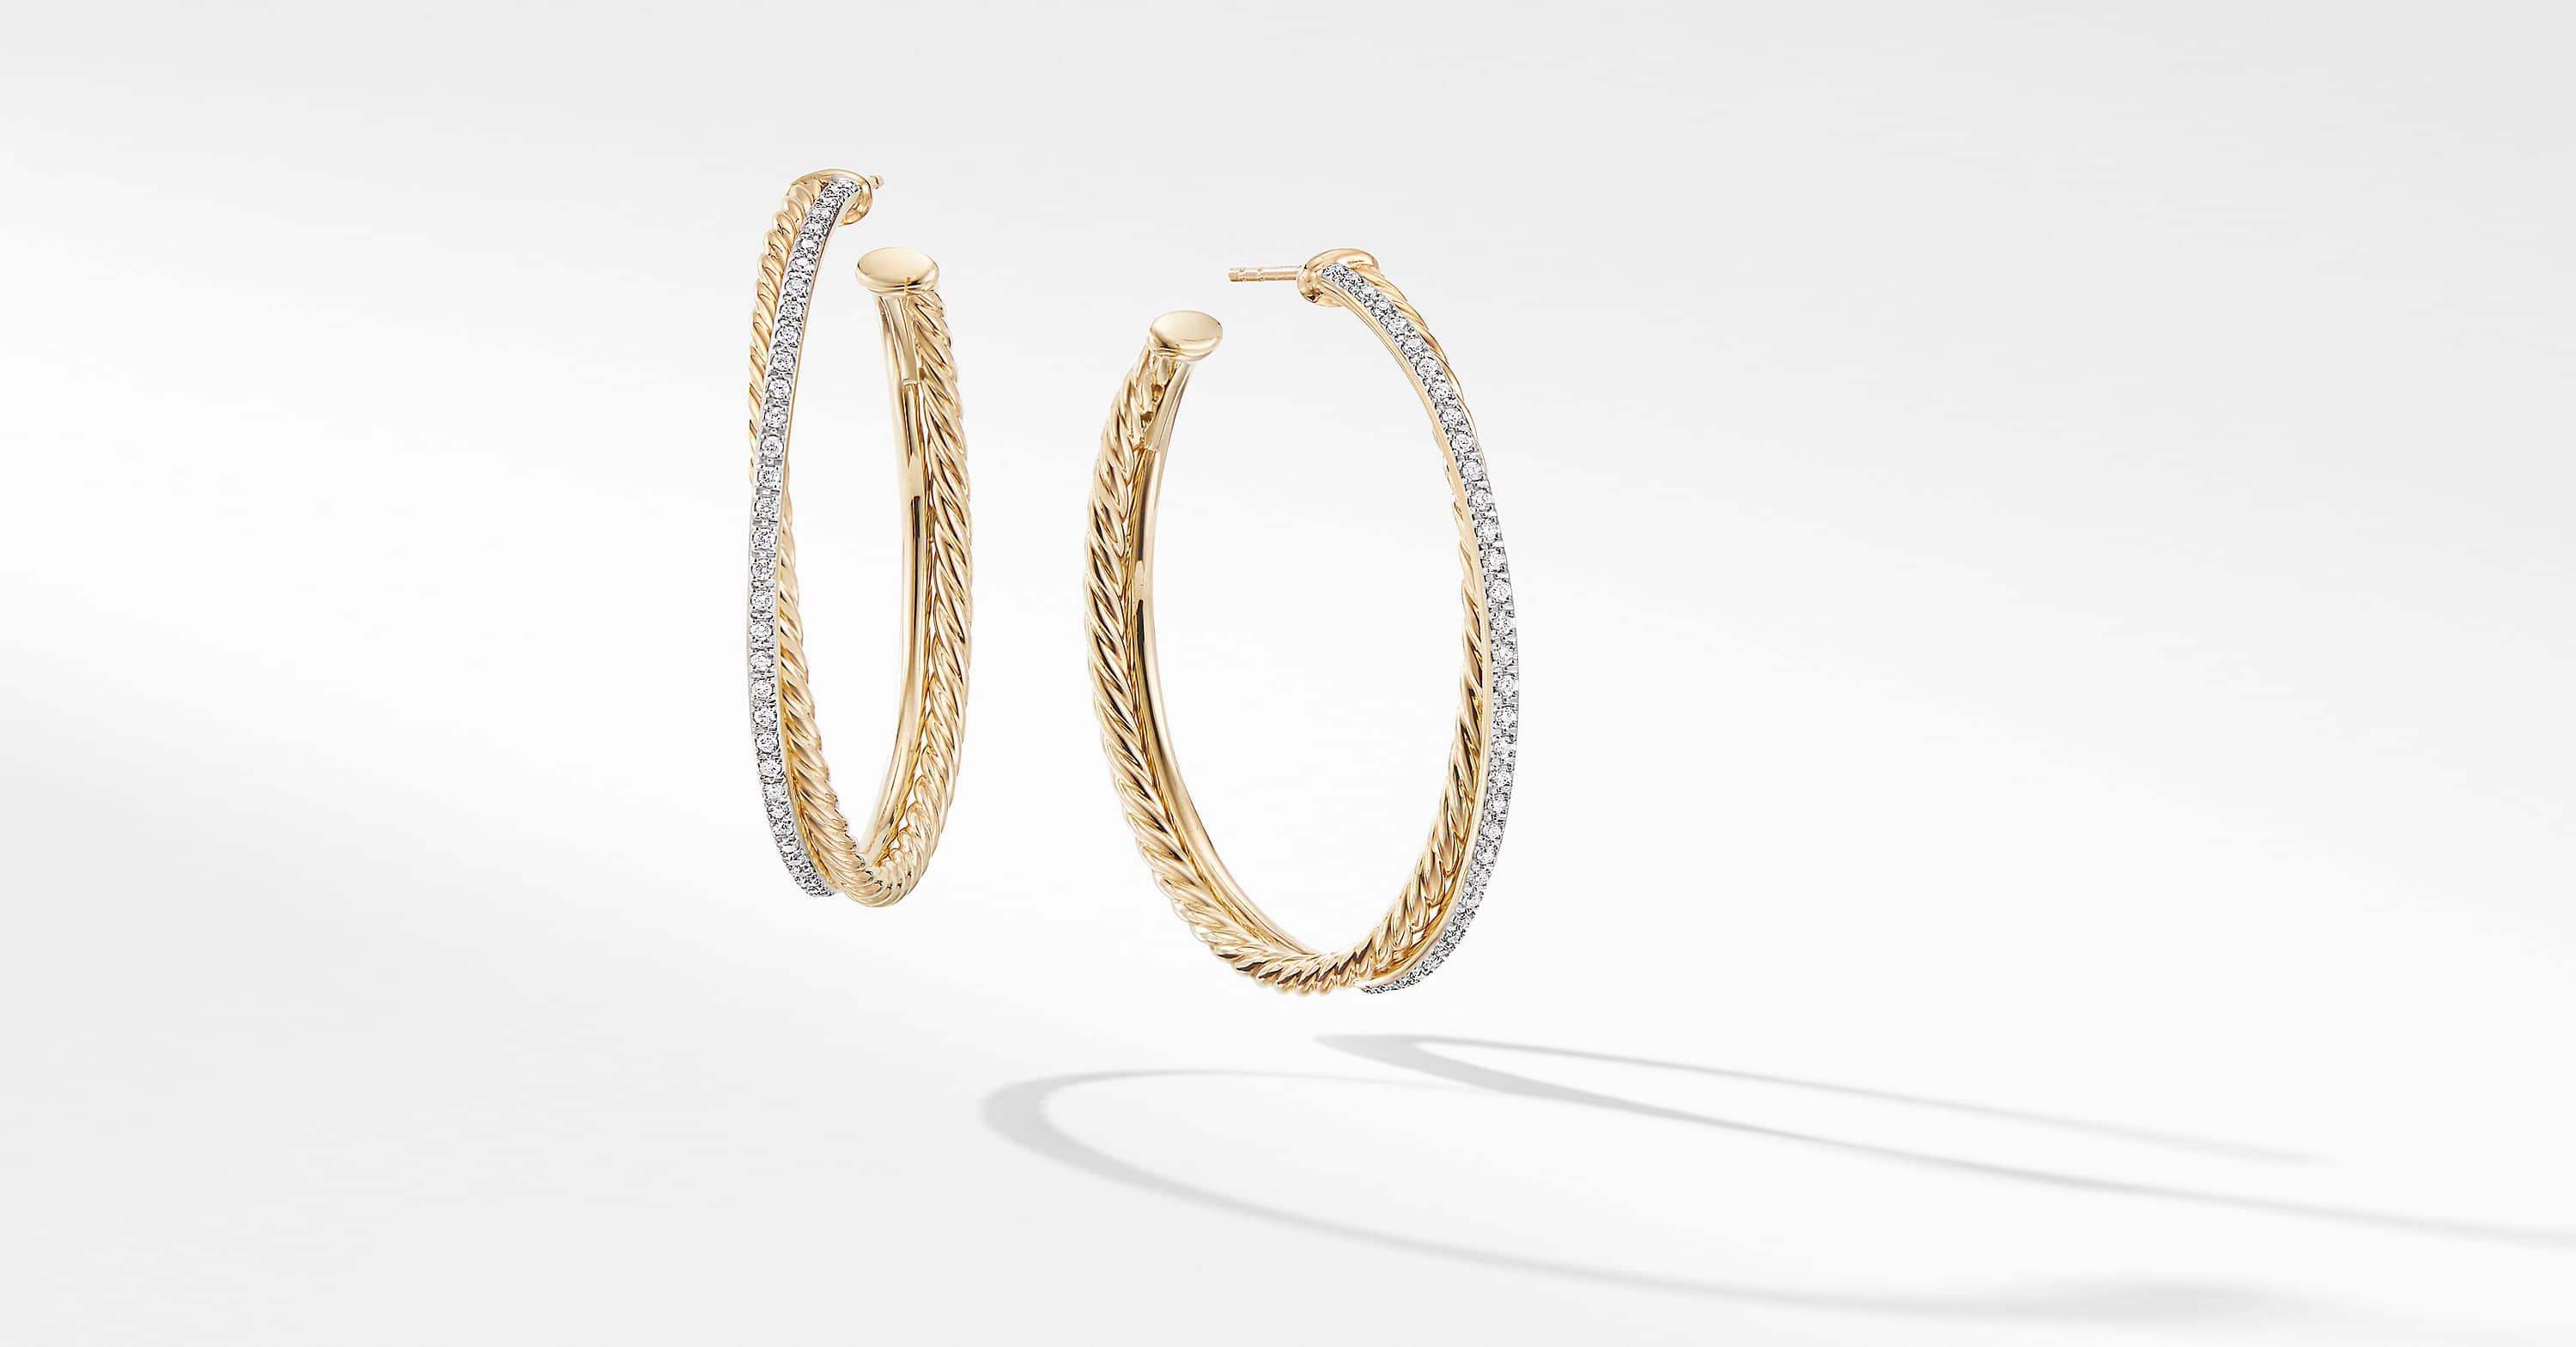 Crossover XL Hoop Earrings in 18K Yellow Gold with Diamonds